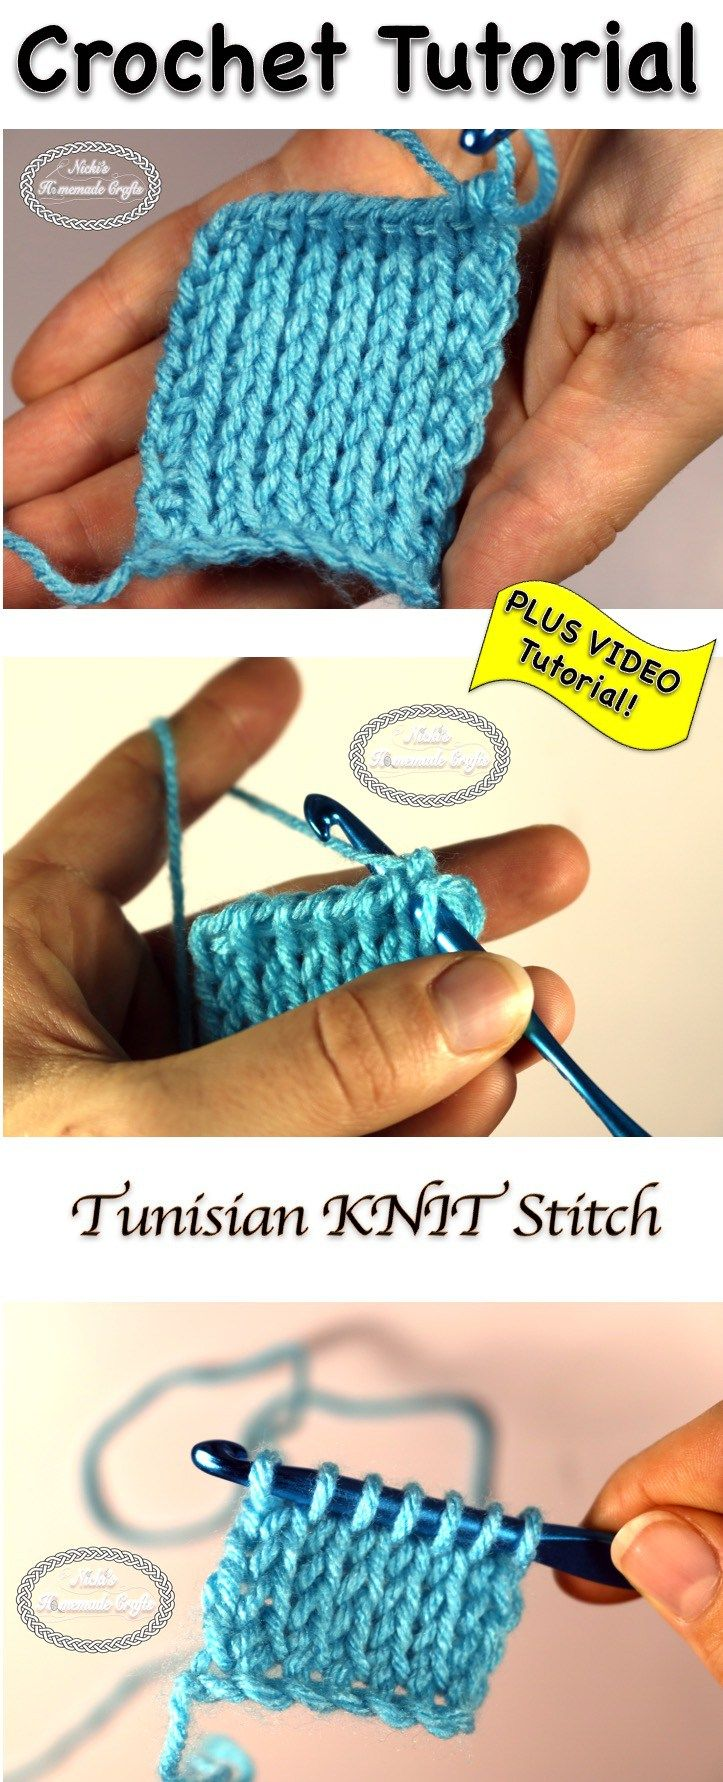 Tunisian Knit Stitch Crochet Tutorial